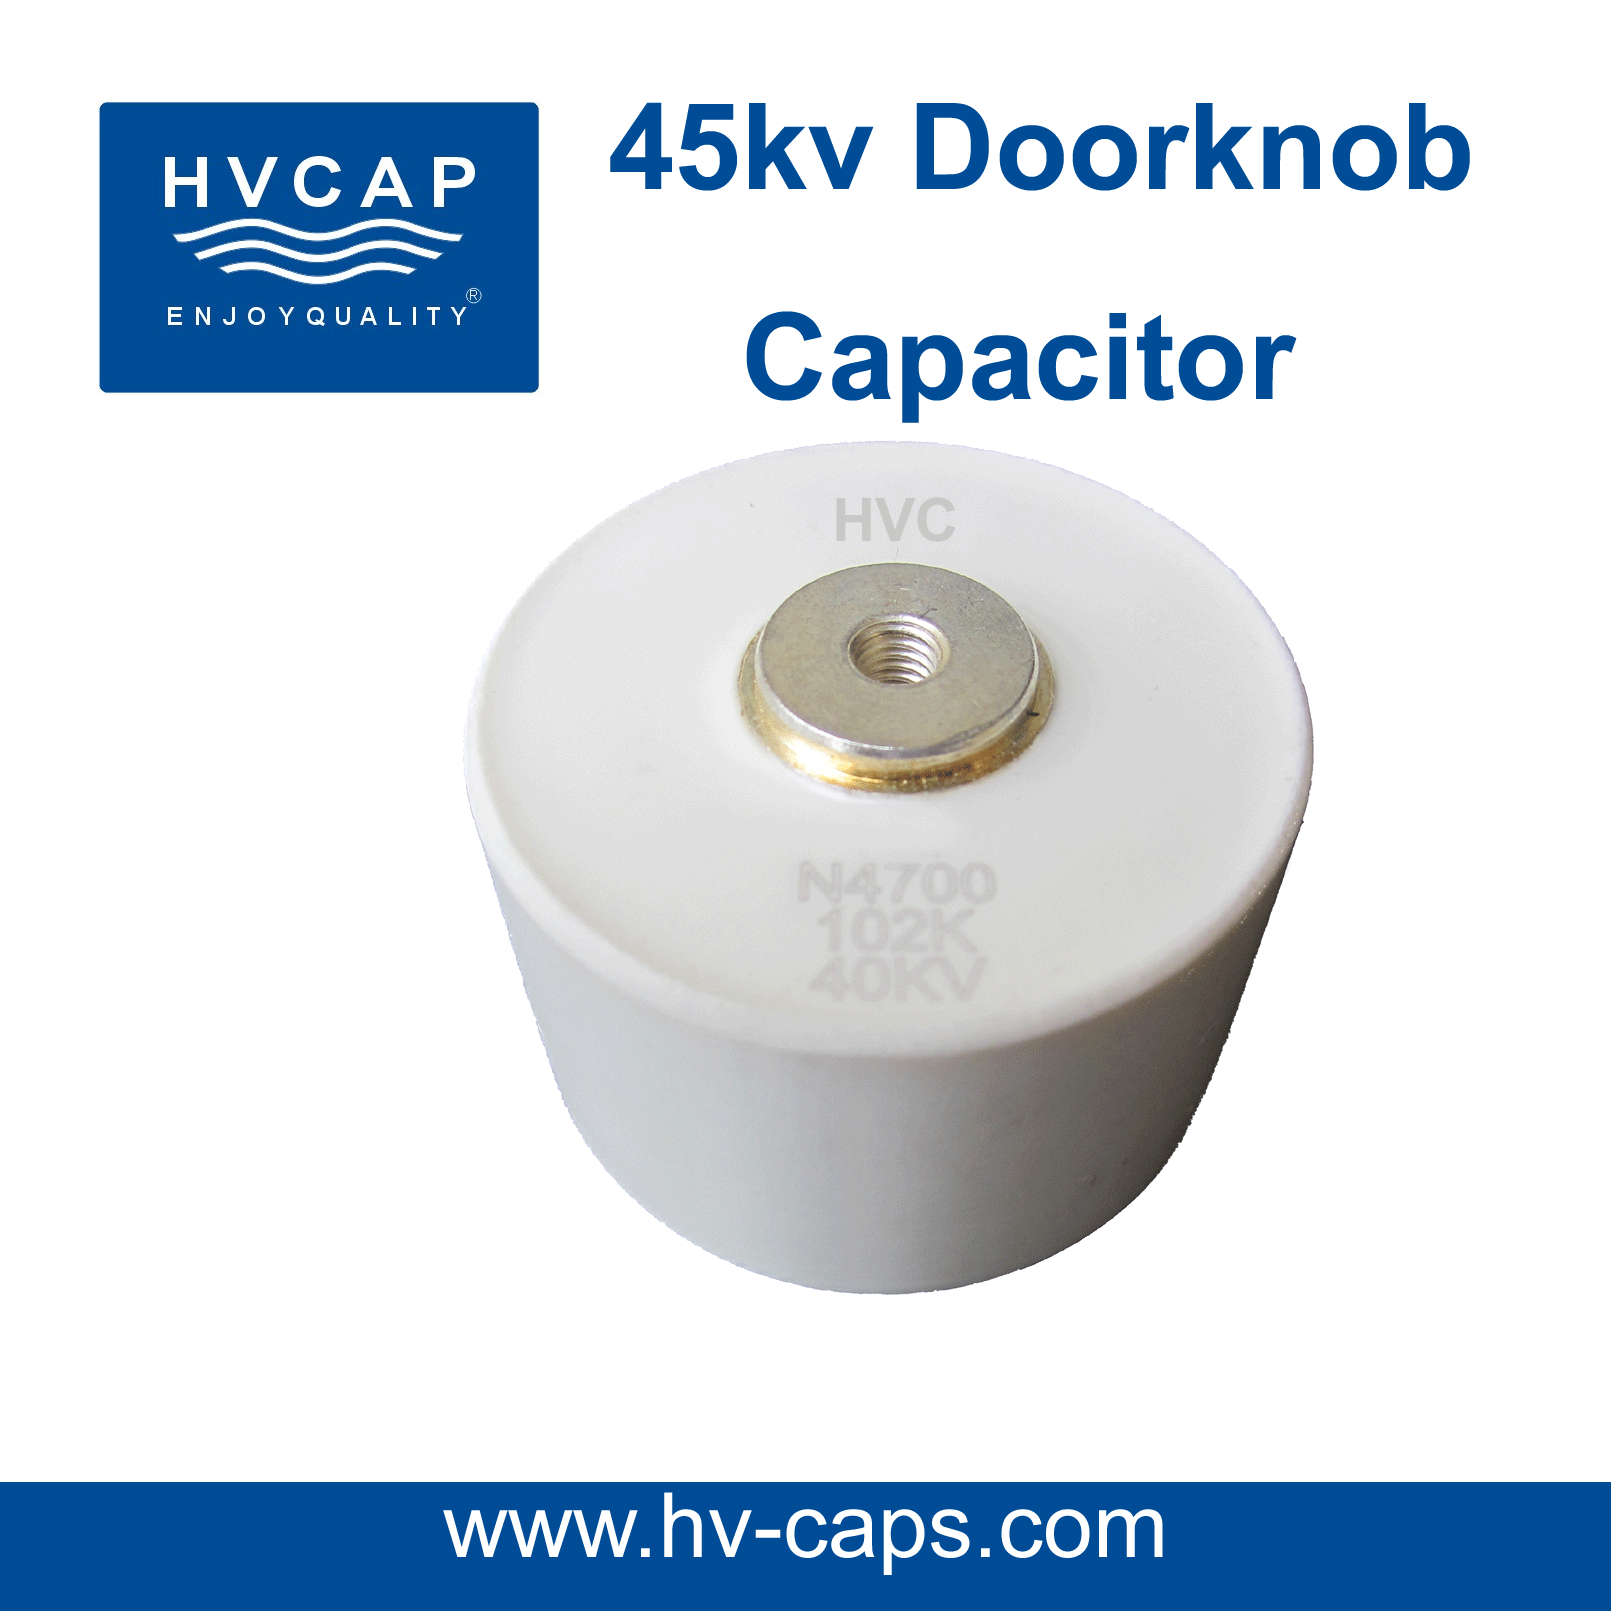 High Voltage Ceramic Doorknob Capacitor 45kv specification.